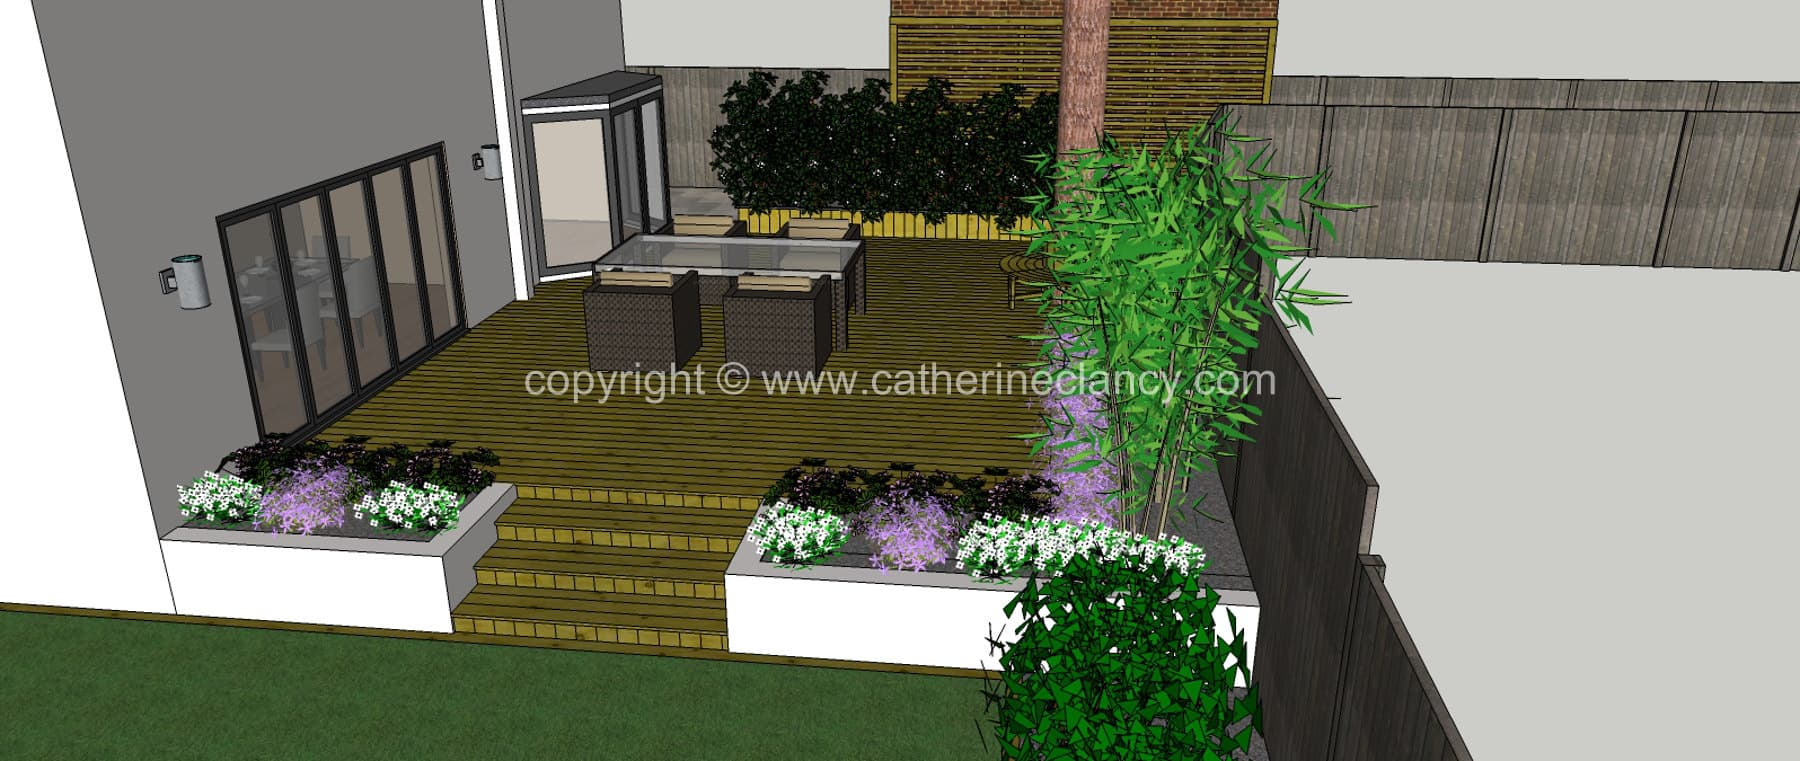 blackheath-deck-garden-8